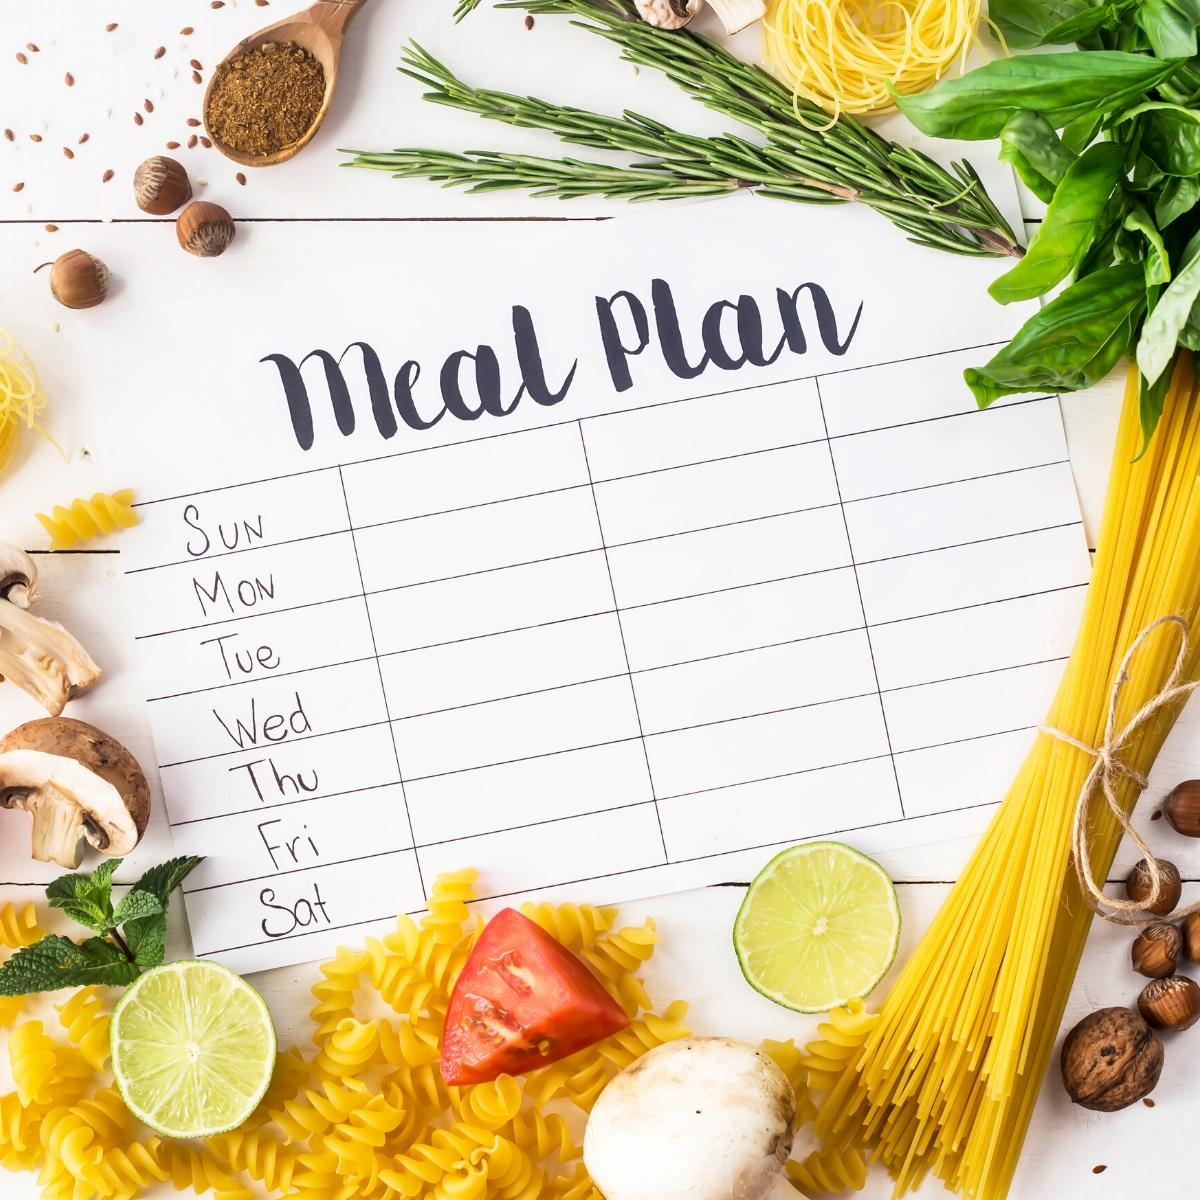 How to start meal planning with your family in mind